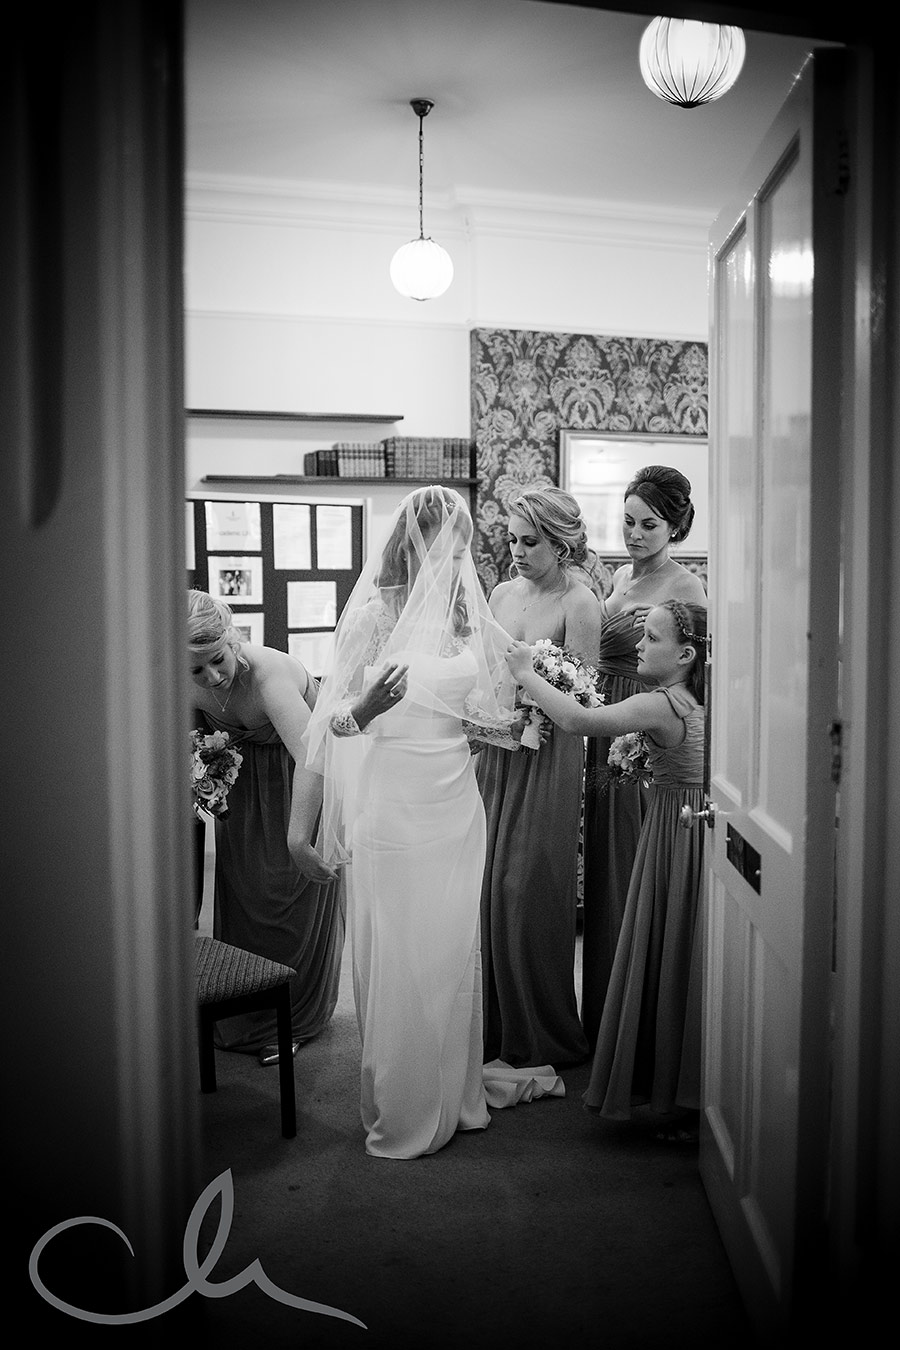 Mount-Ephraim-Wedding-Photography-44